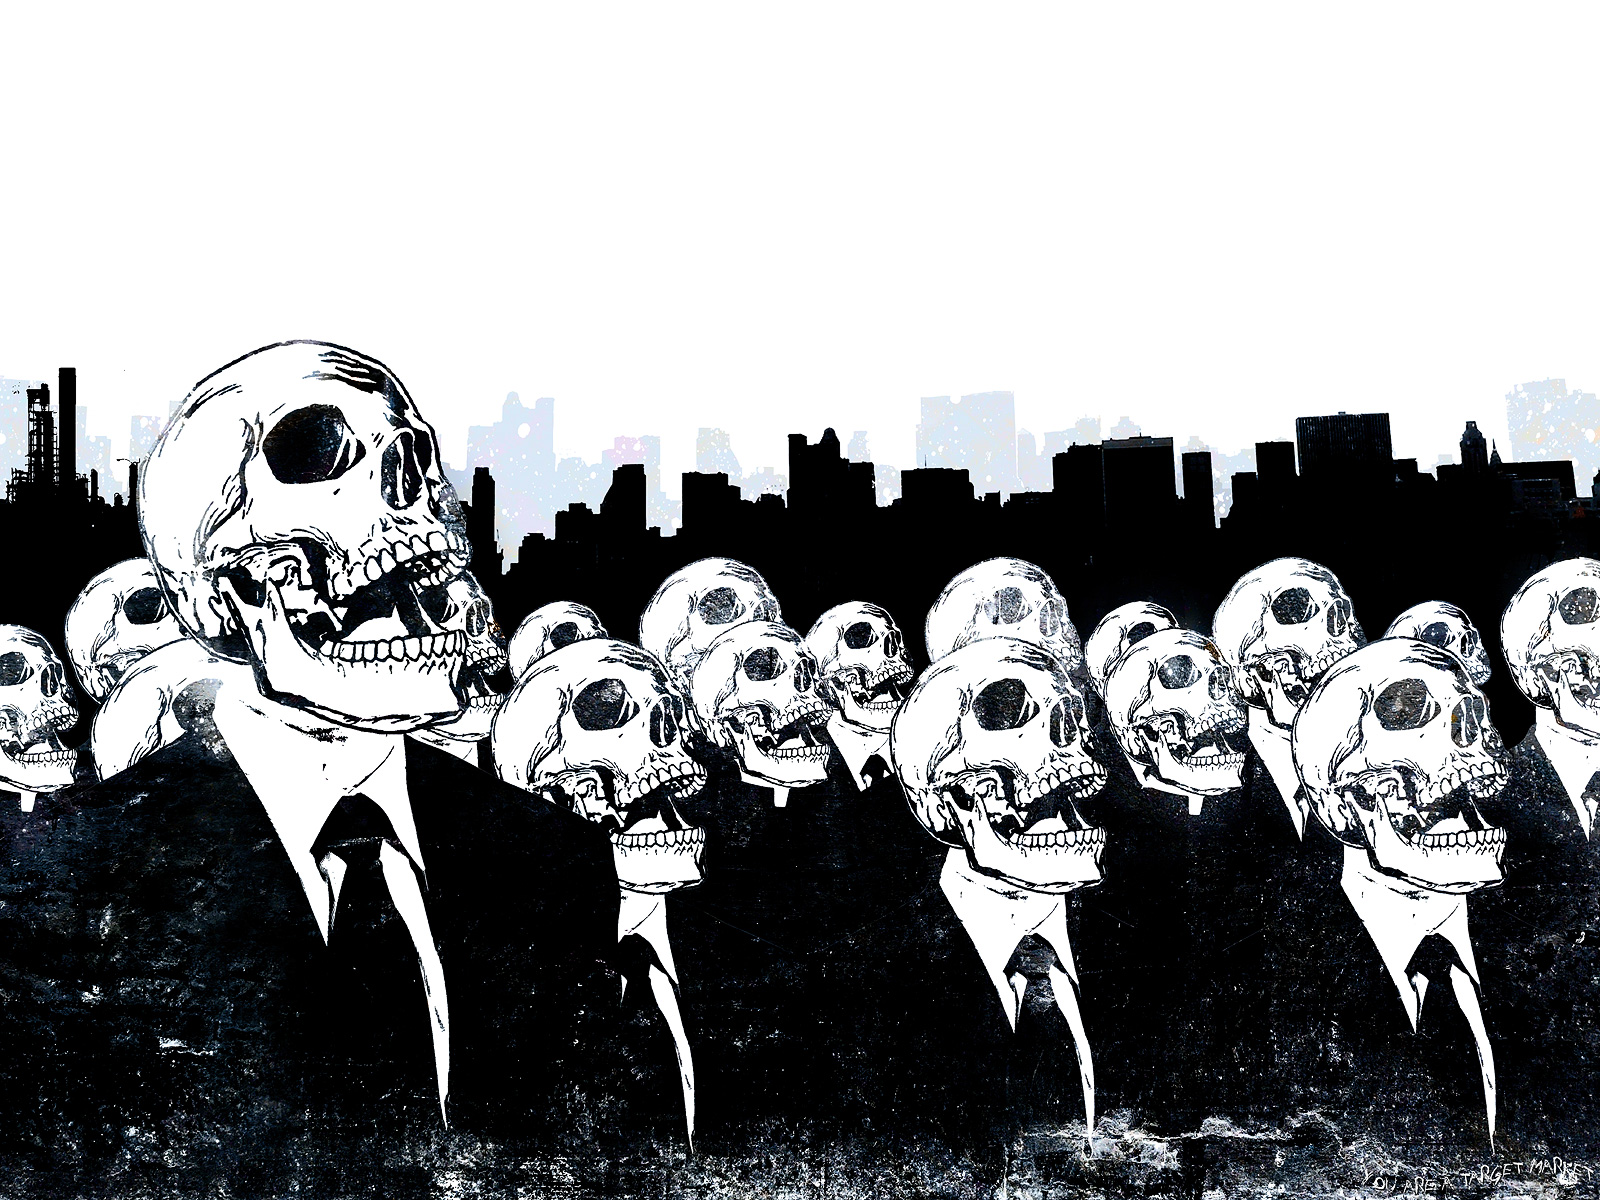 crowded-skulls-wallpaper.jpg